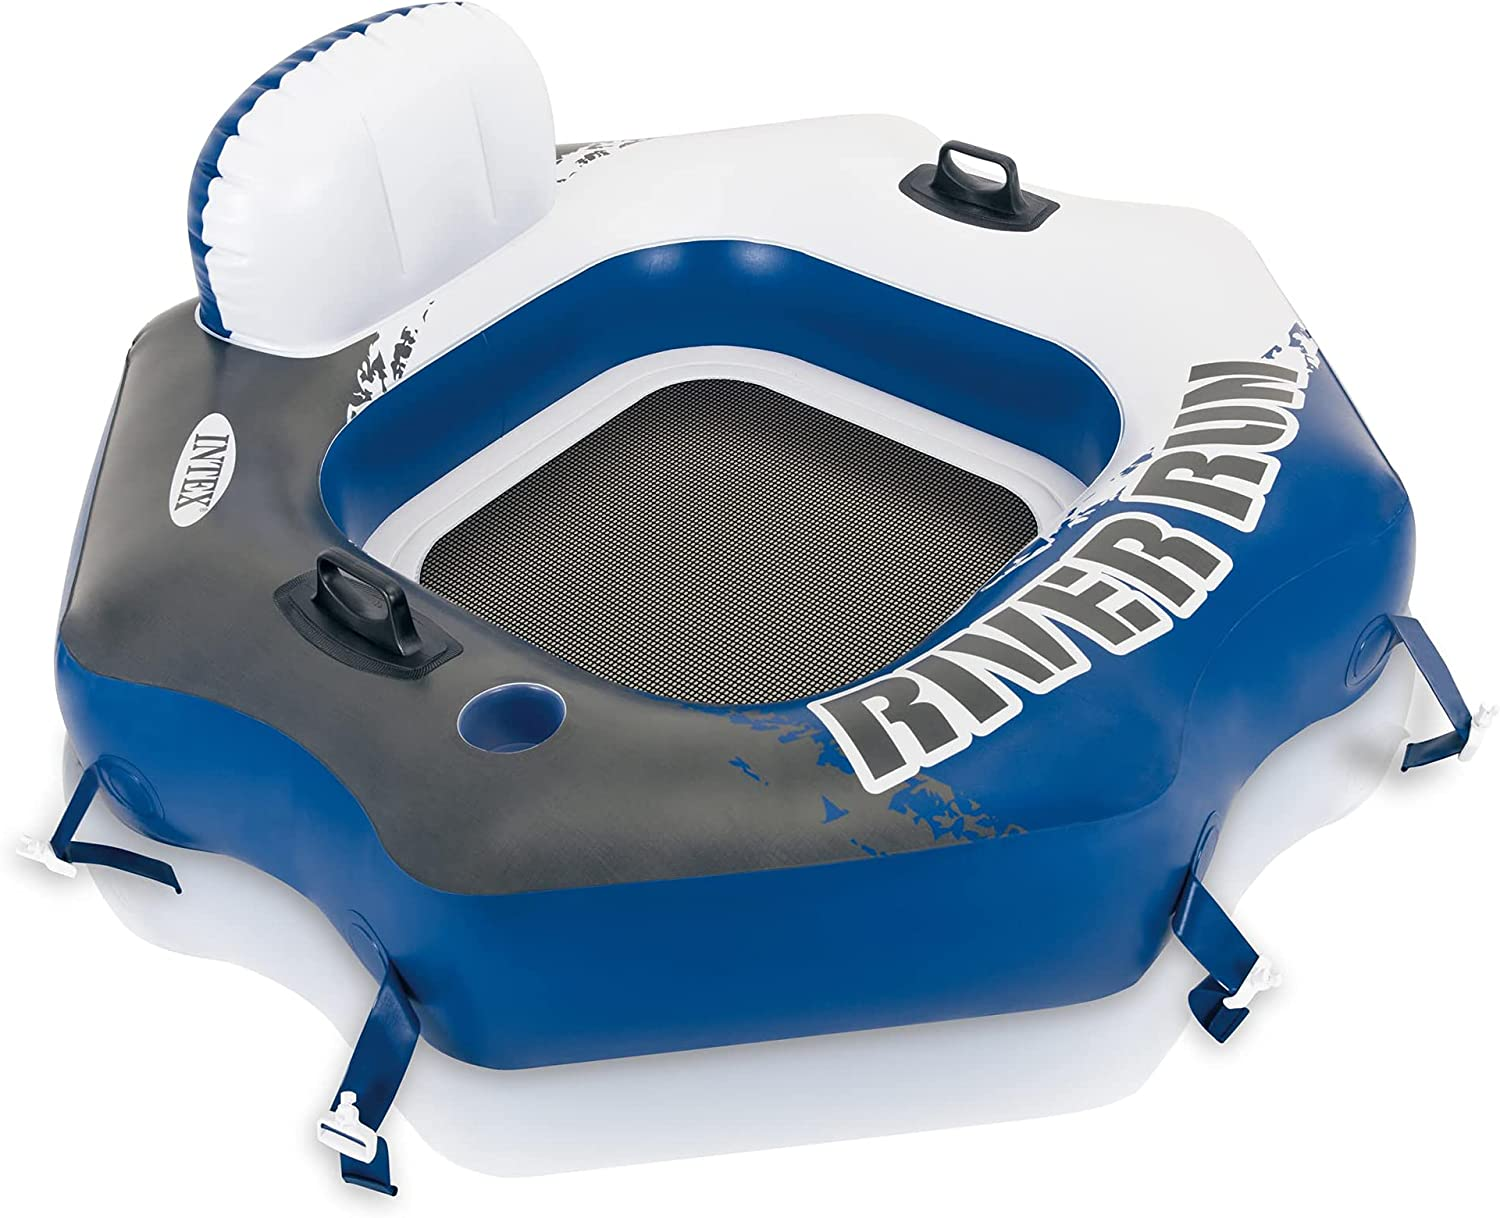 Rave Sports Inflatable Ocean River Water Sports 3 Piece Anchor Connection Kit